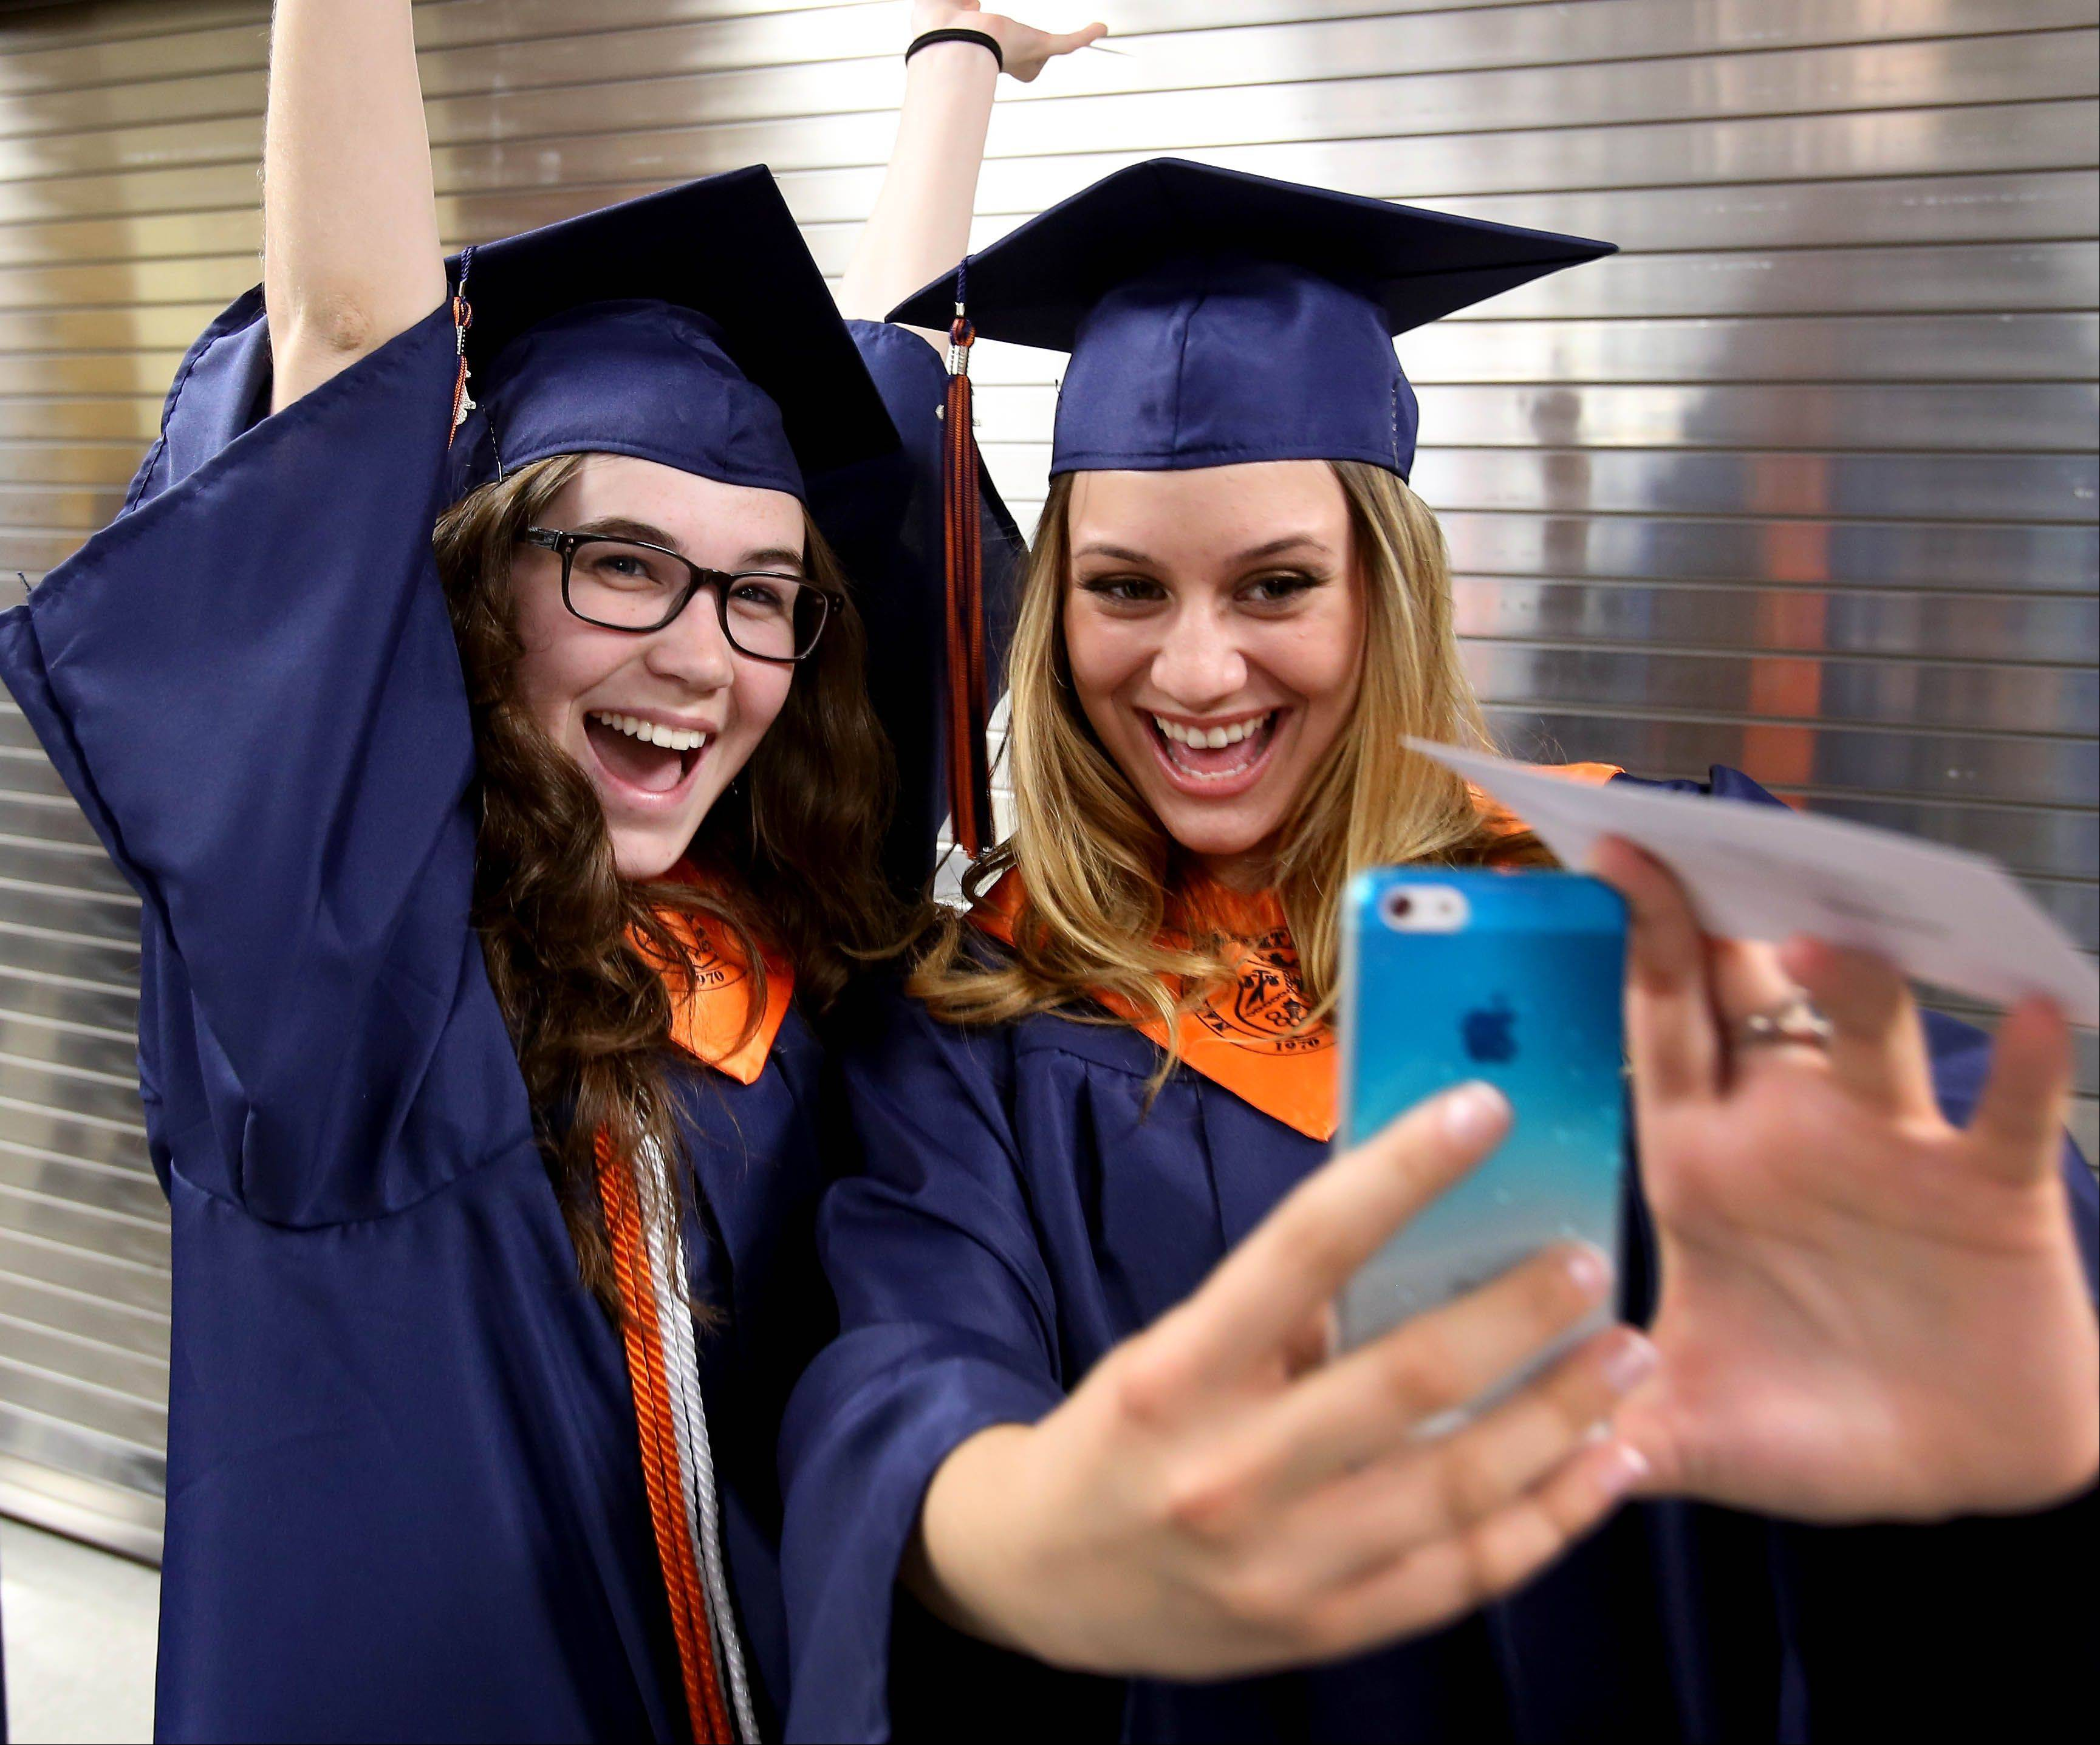 Chloe Gasser, left and Ivana Garotic, right, get a cell phone photo before the Naperville North graduation on Monday.